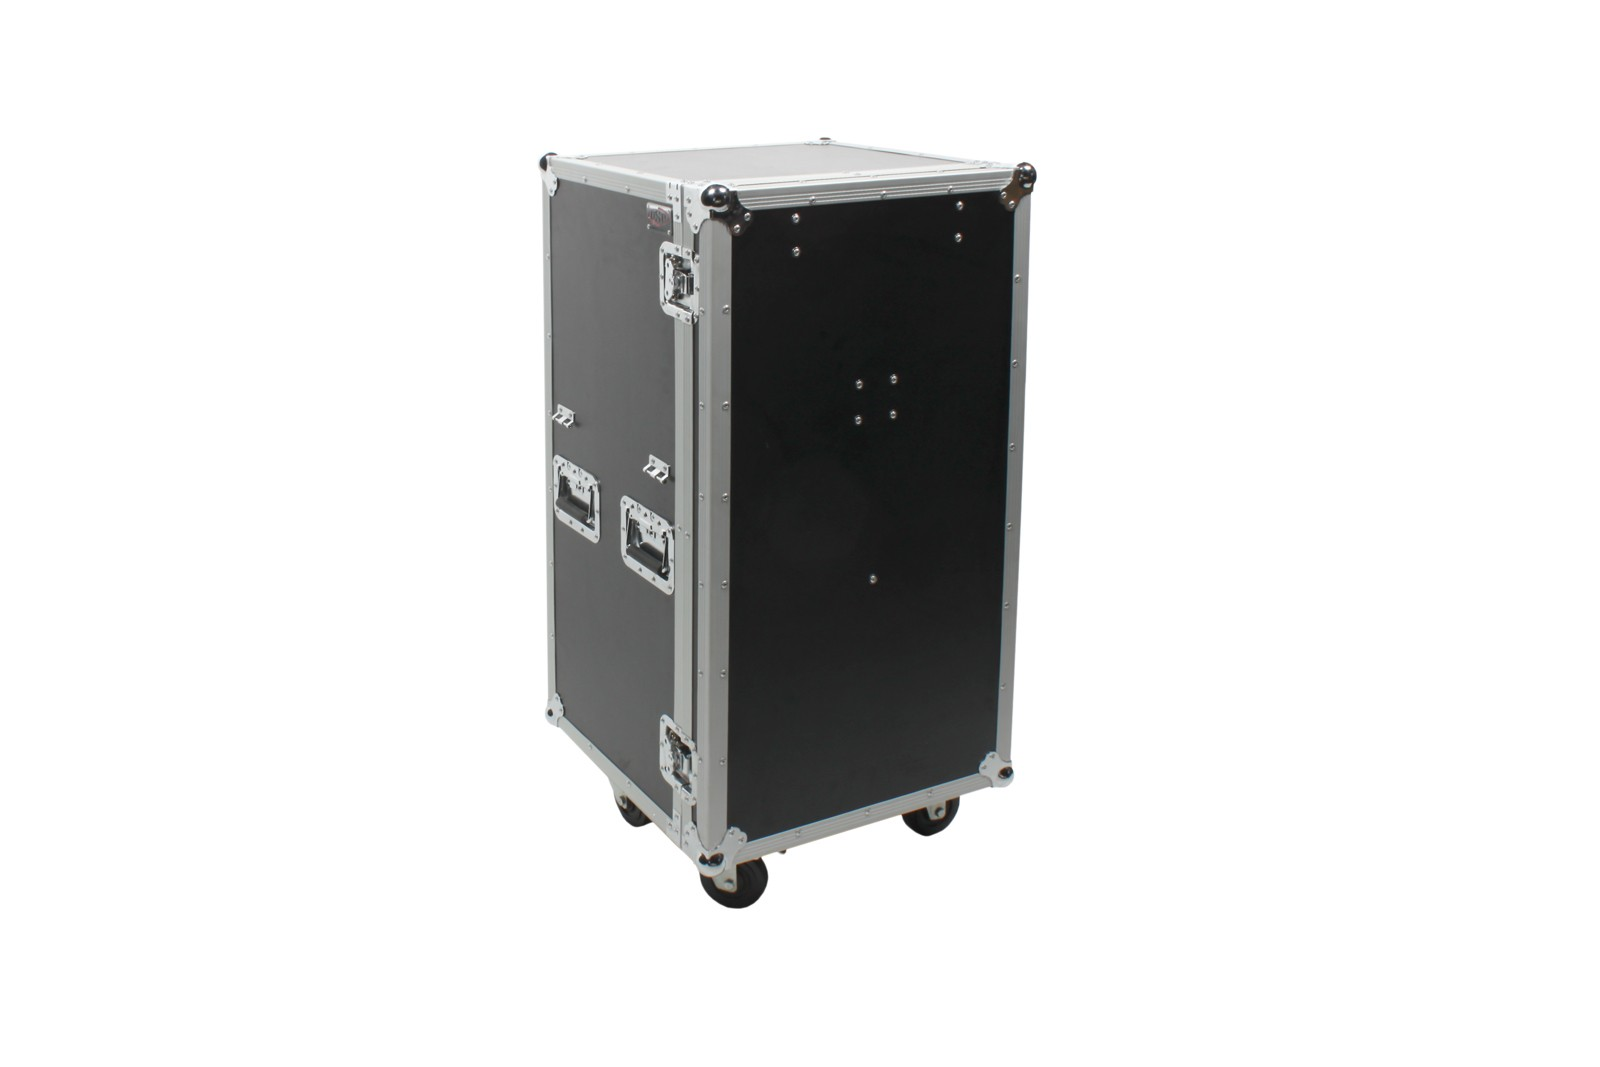 7 Drawer Multi-Purpose Work Box Road Case